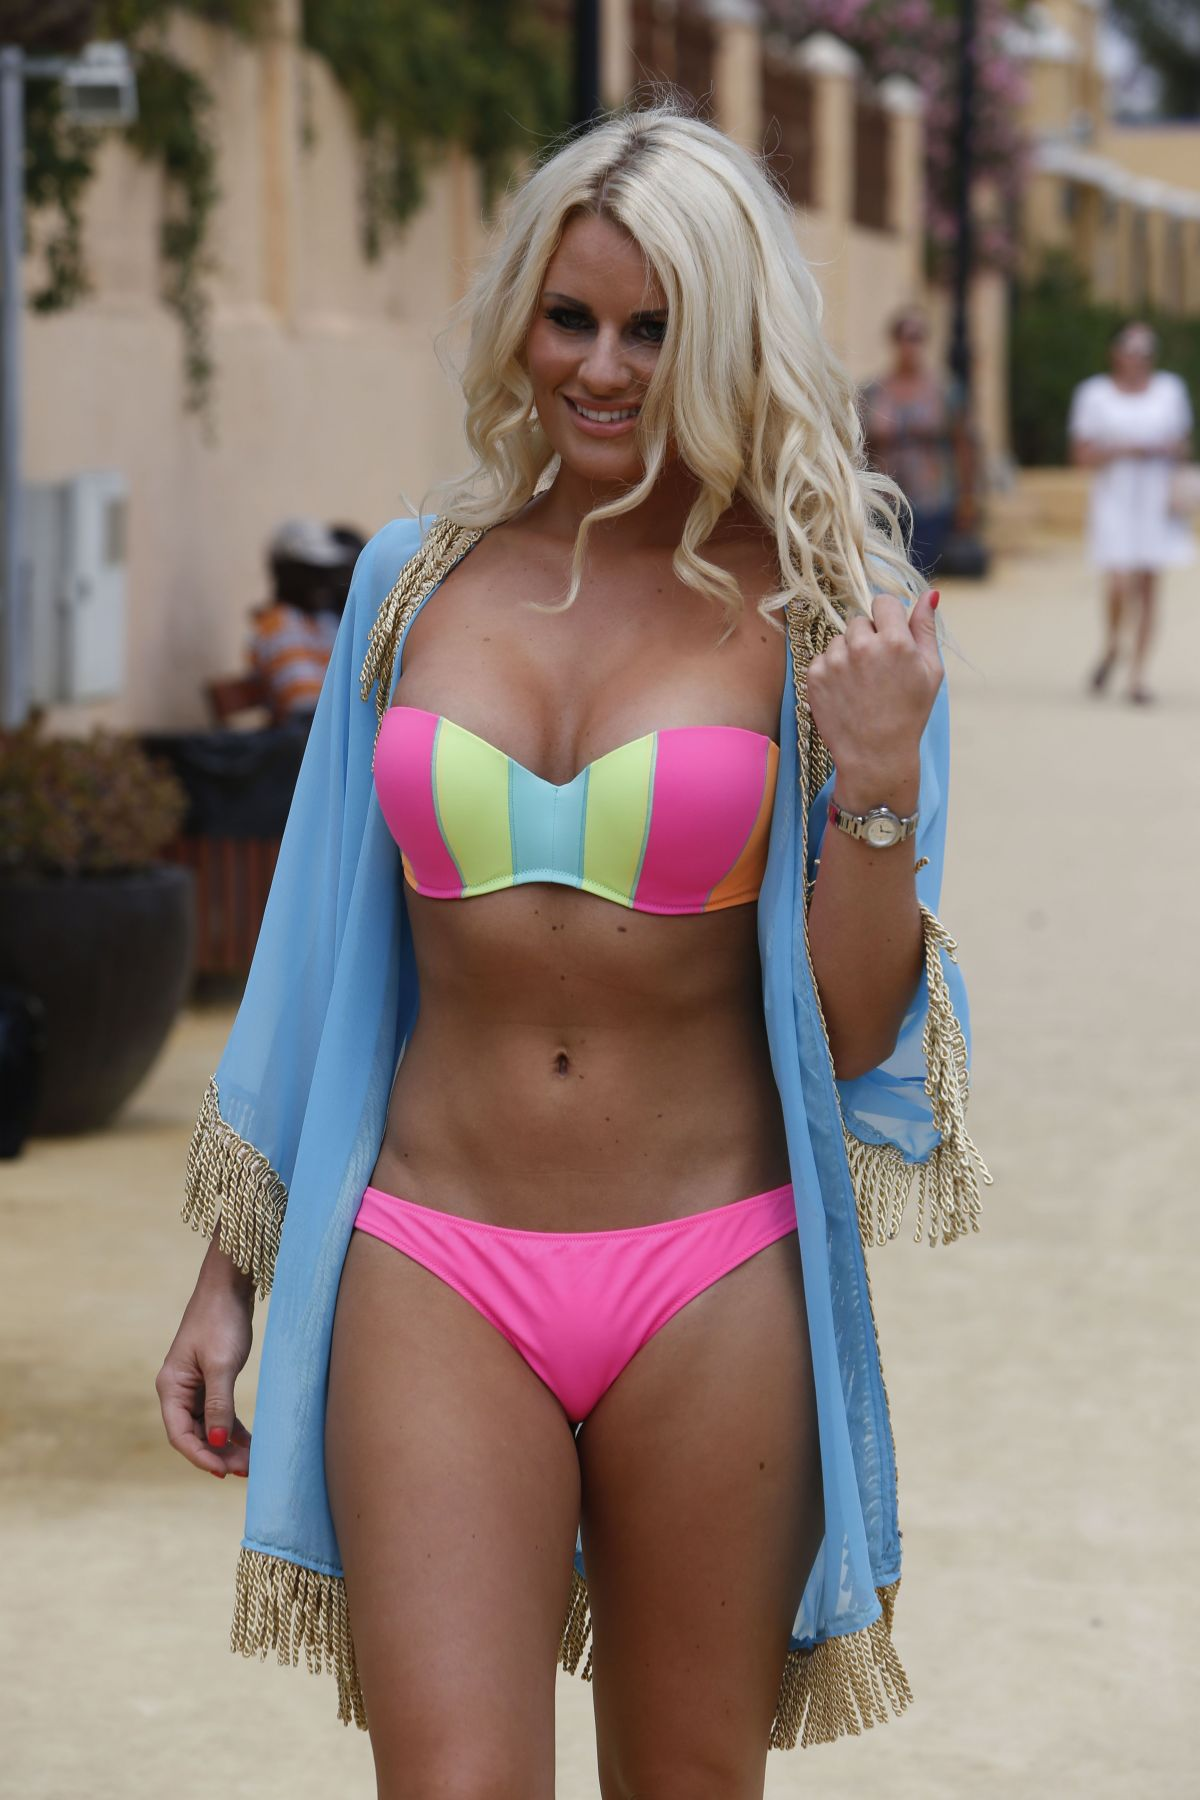 TOWIE GIRLS in Bikinis at a Beach in Marbella